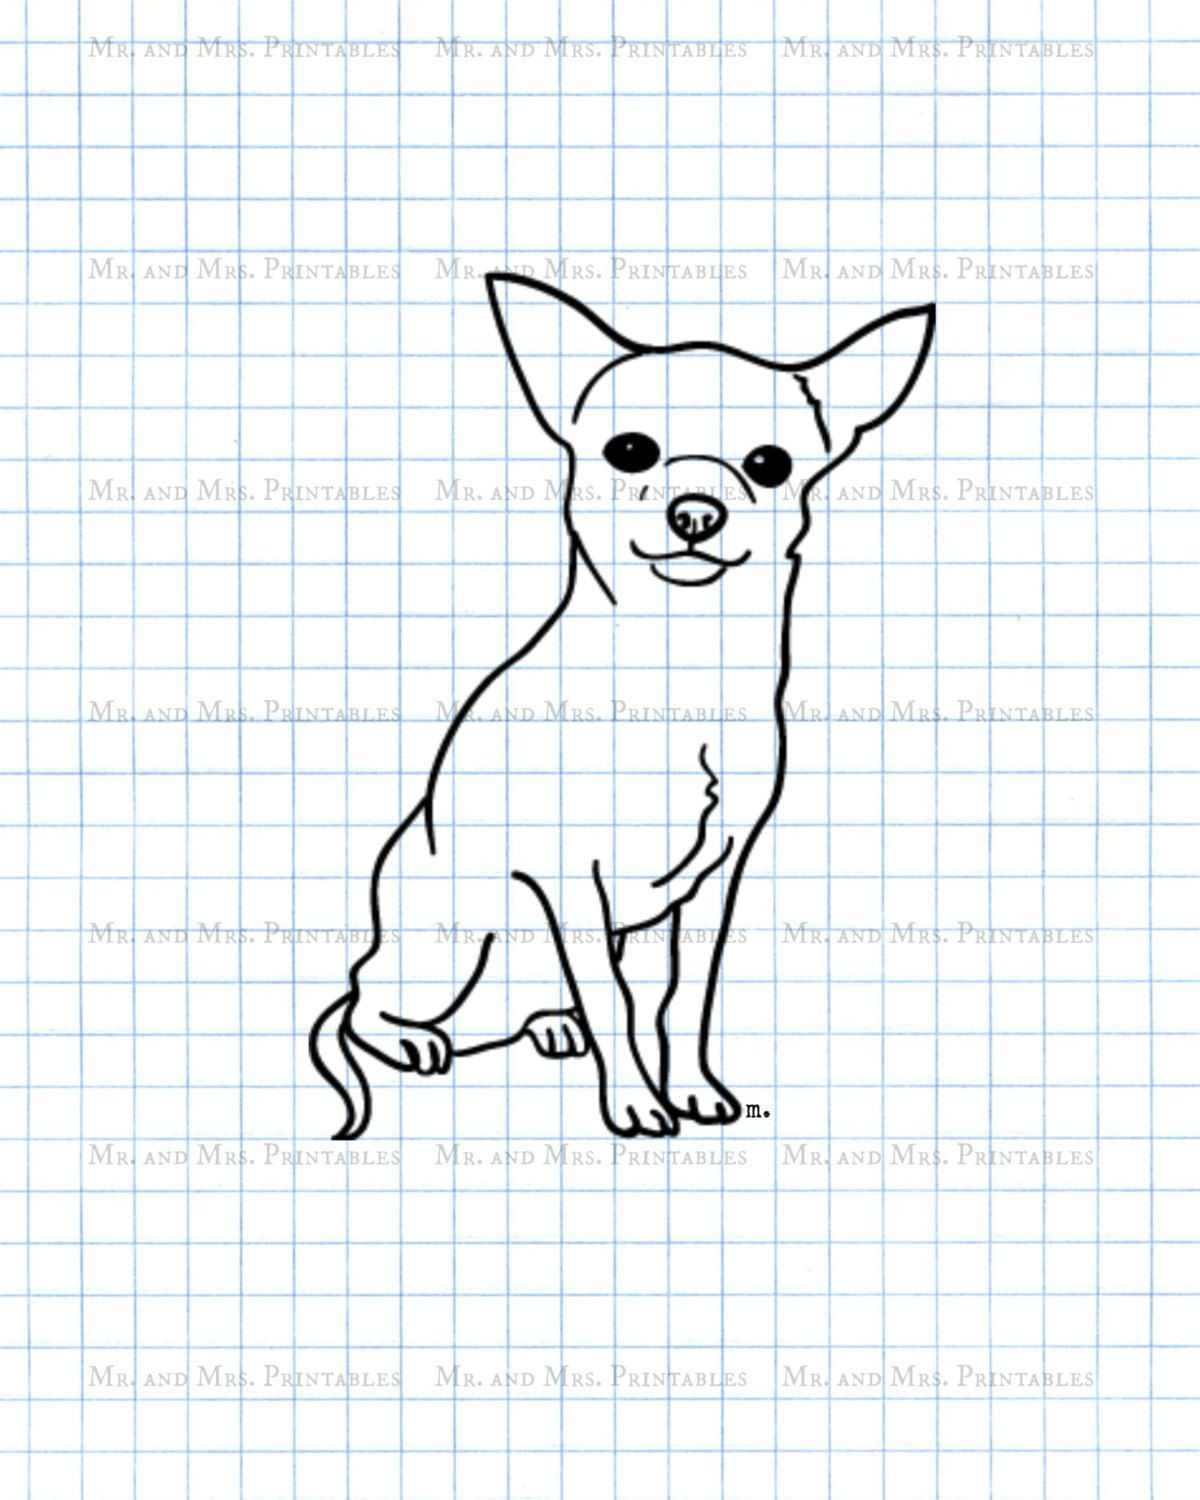 Chihuahua Clipart Stamp Coloring Page Digital Image Sticker Image Instant Download Animal Dog Nature Chihuahua Drawing Line Art Drawings Animal Drawings [ 1500 x 1200 Pixel ]